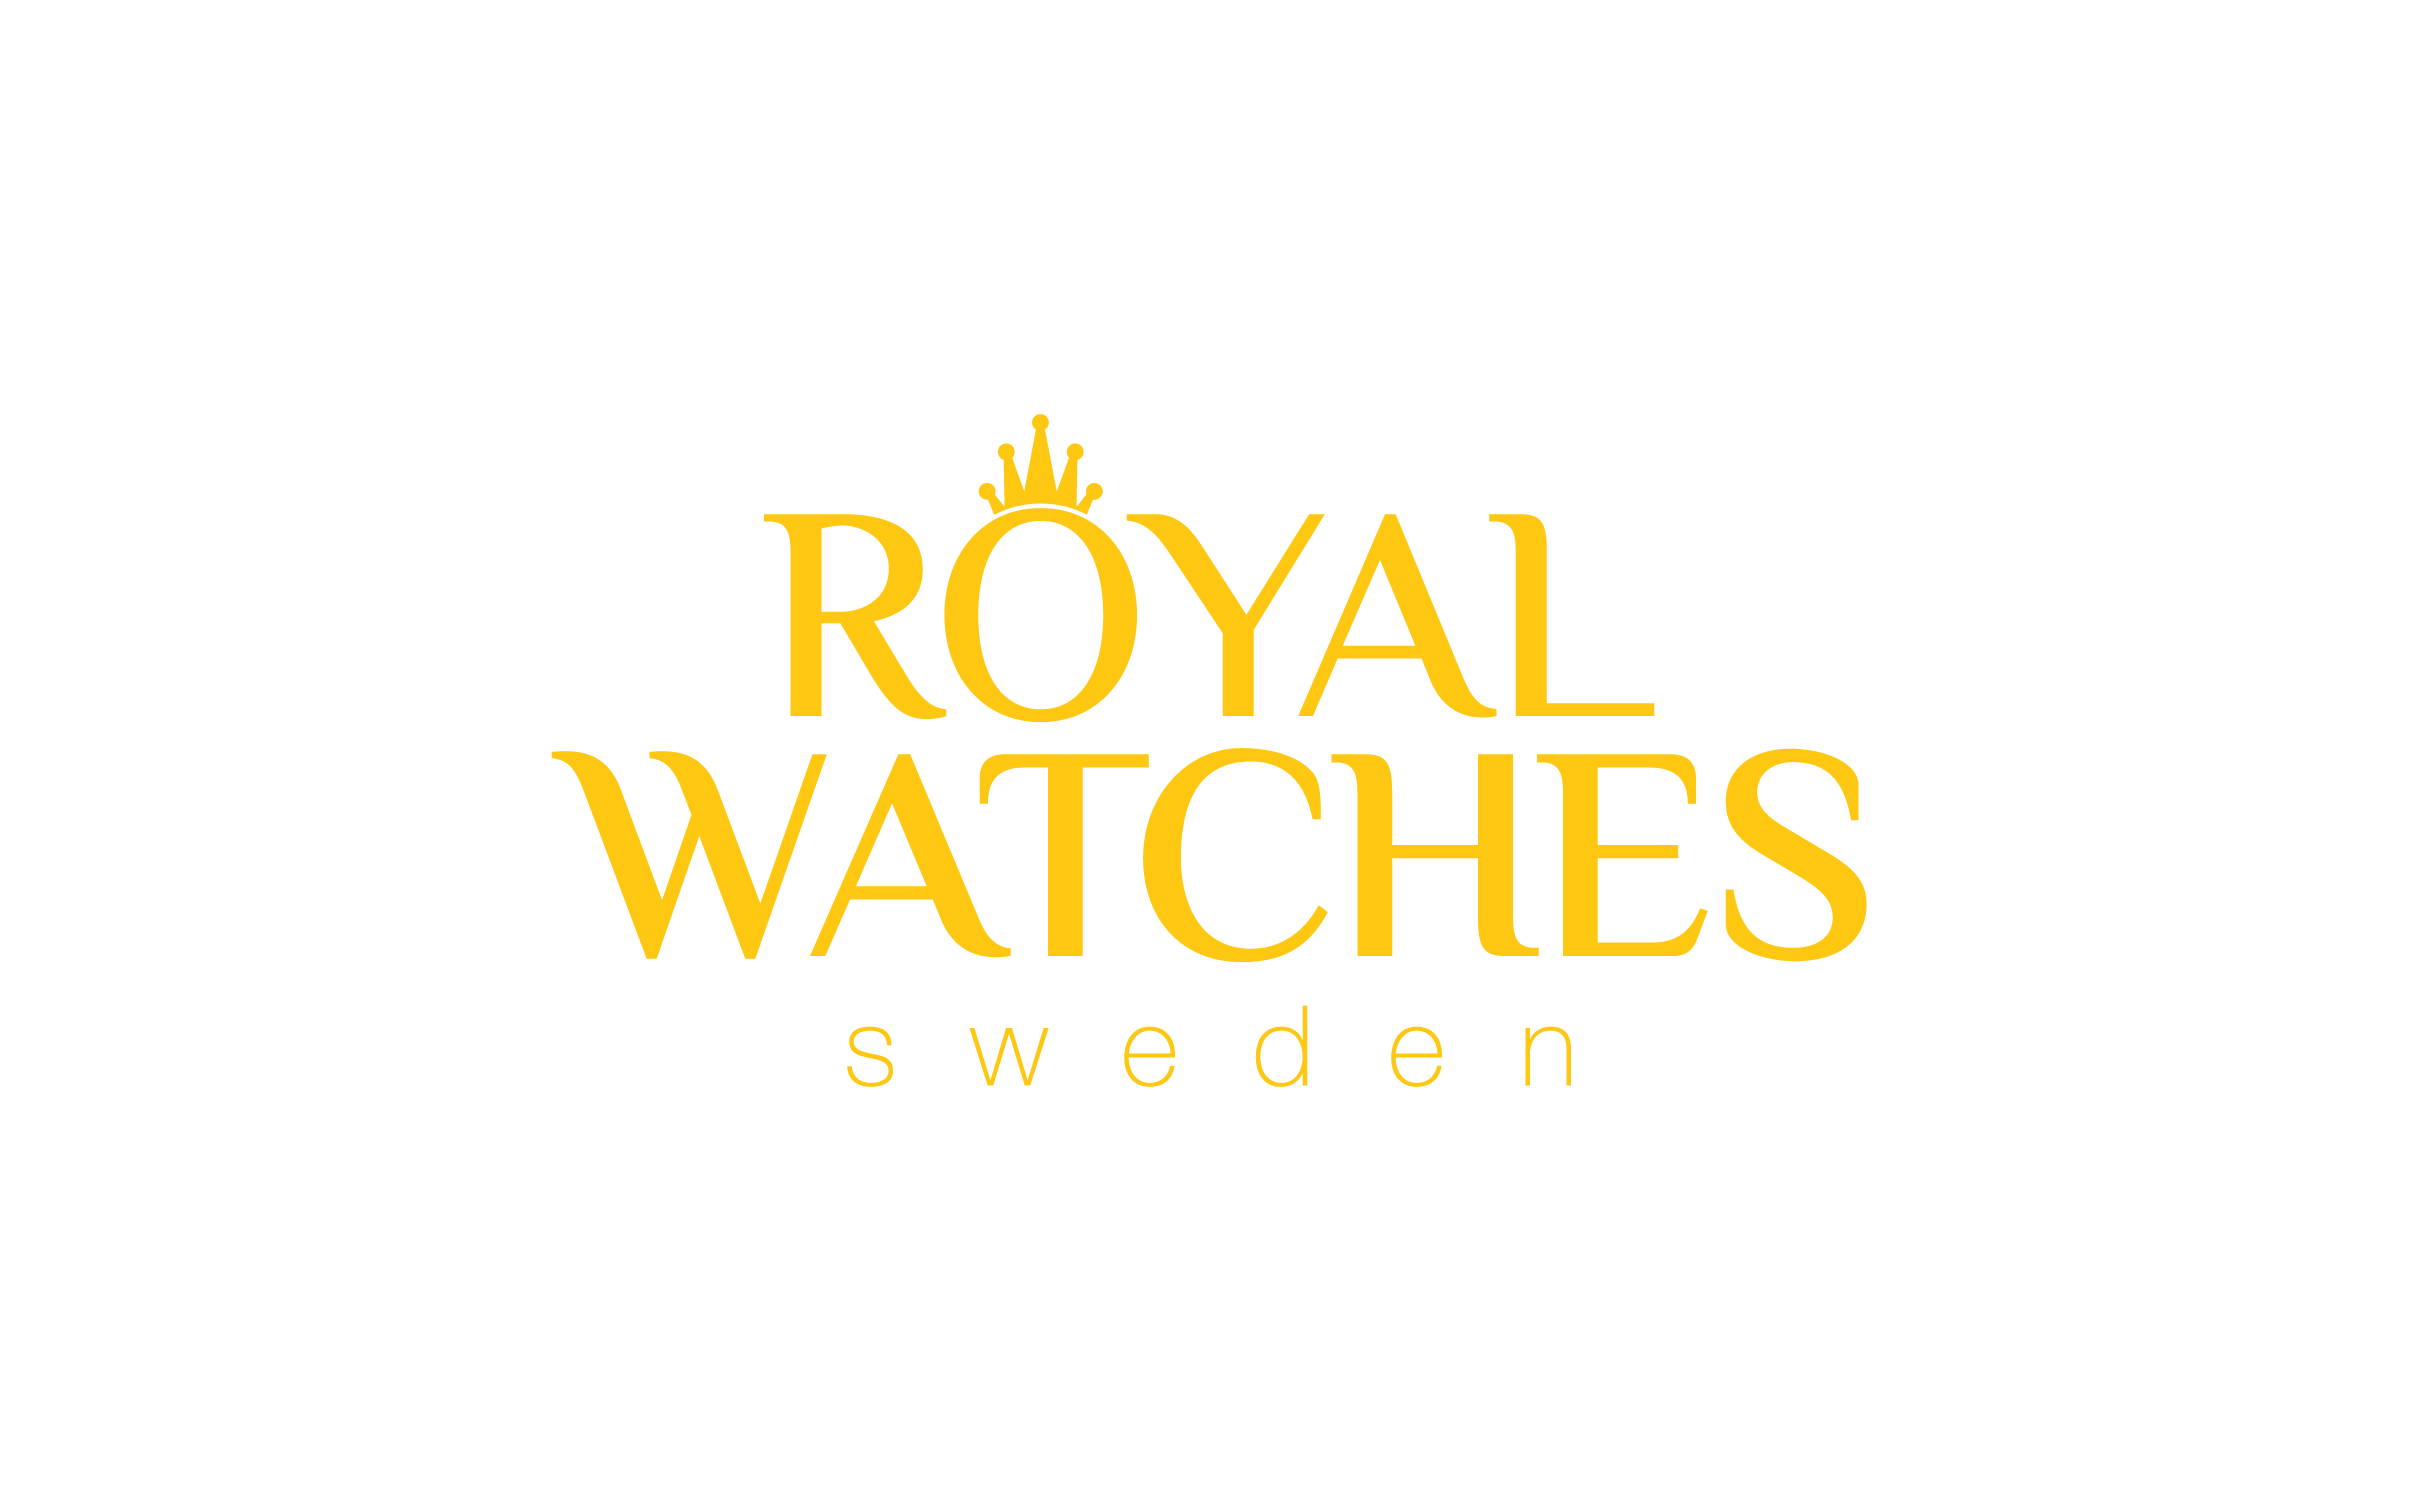 Royal Watches Sweden AB